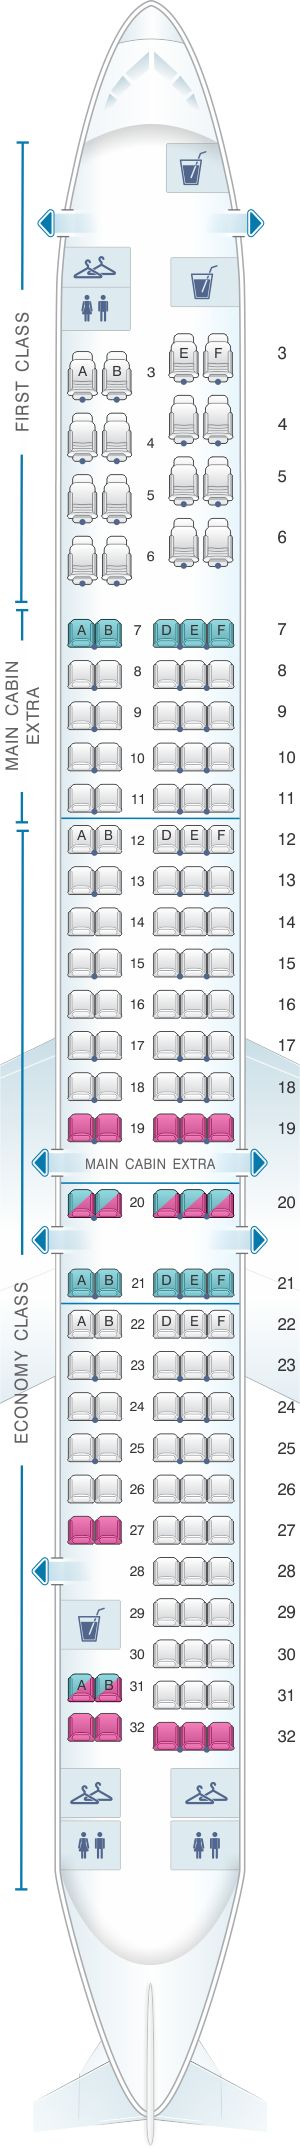 Seat Map American Airlines McDonnell Douglas MD 80